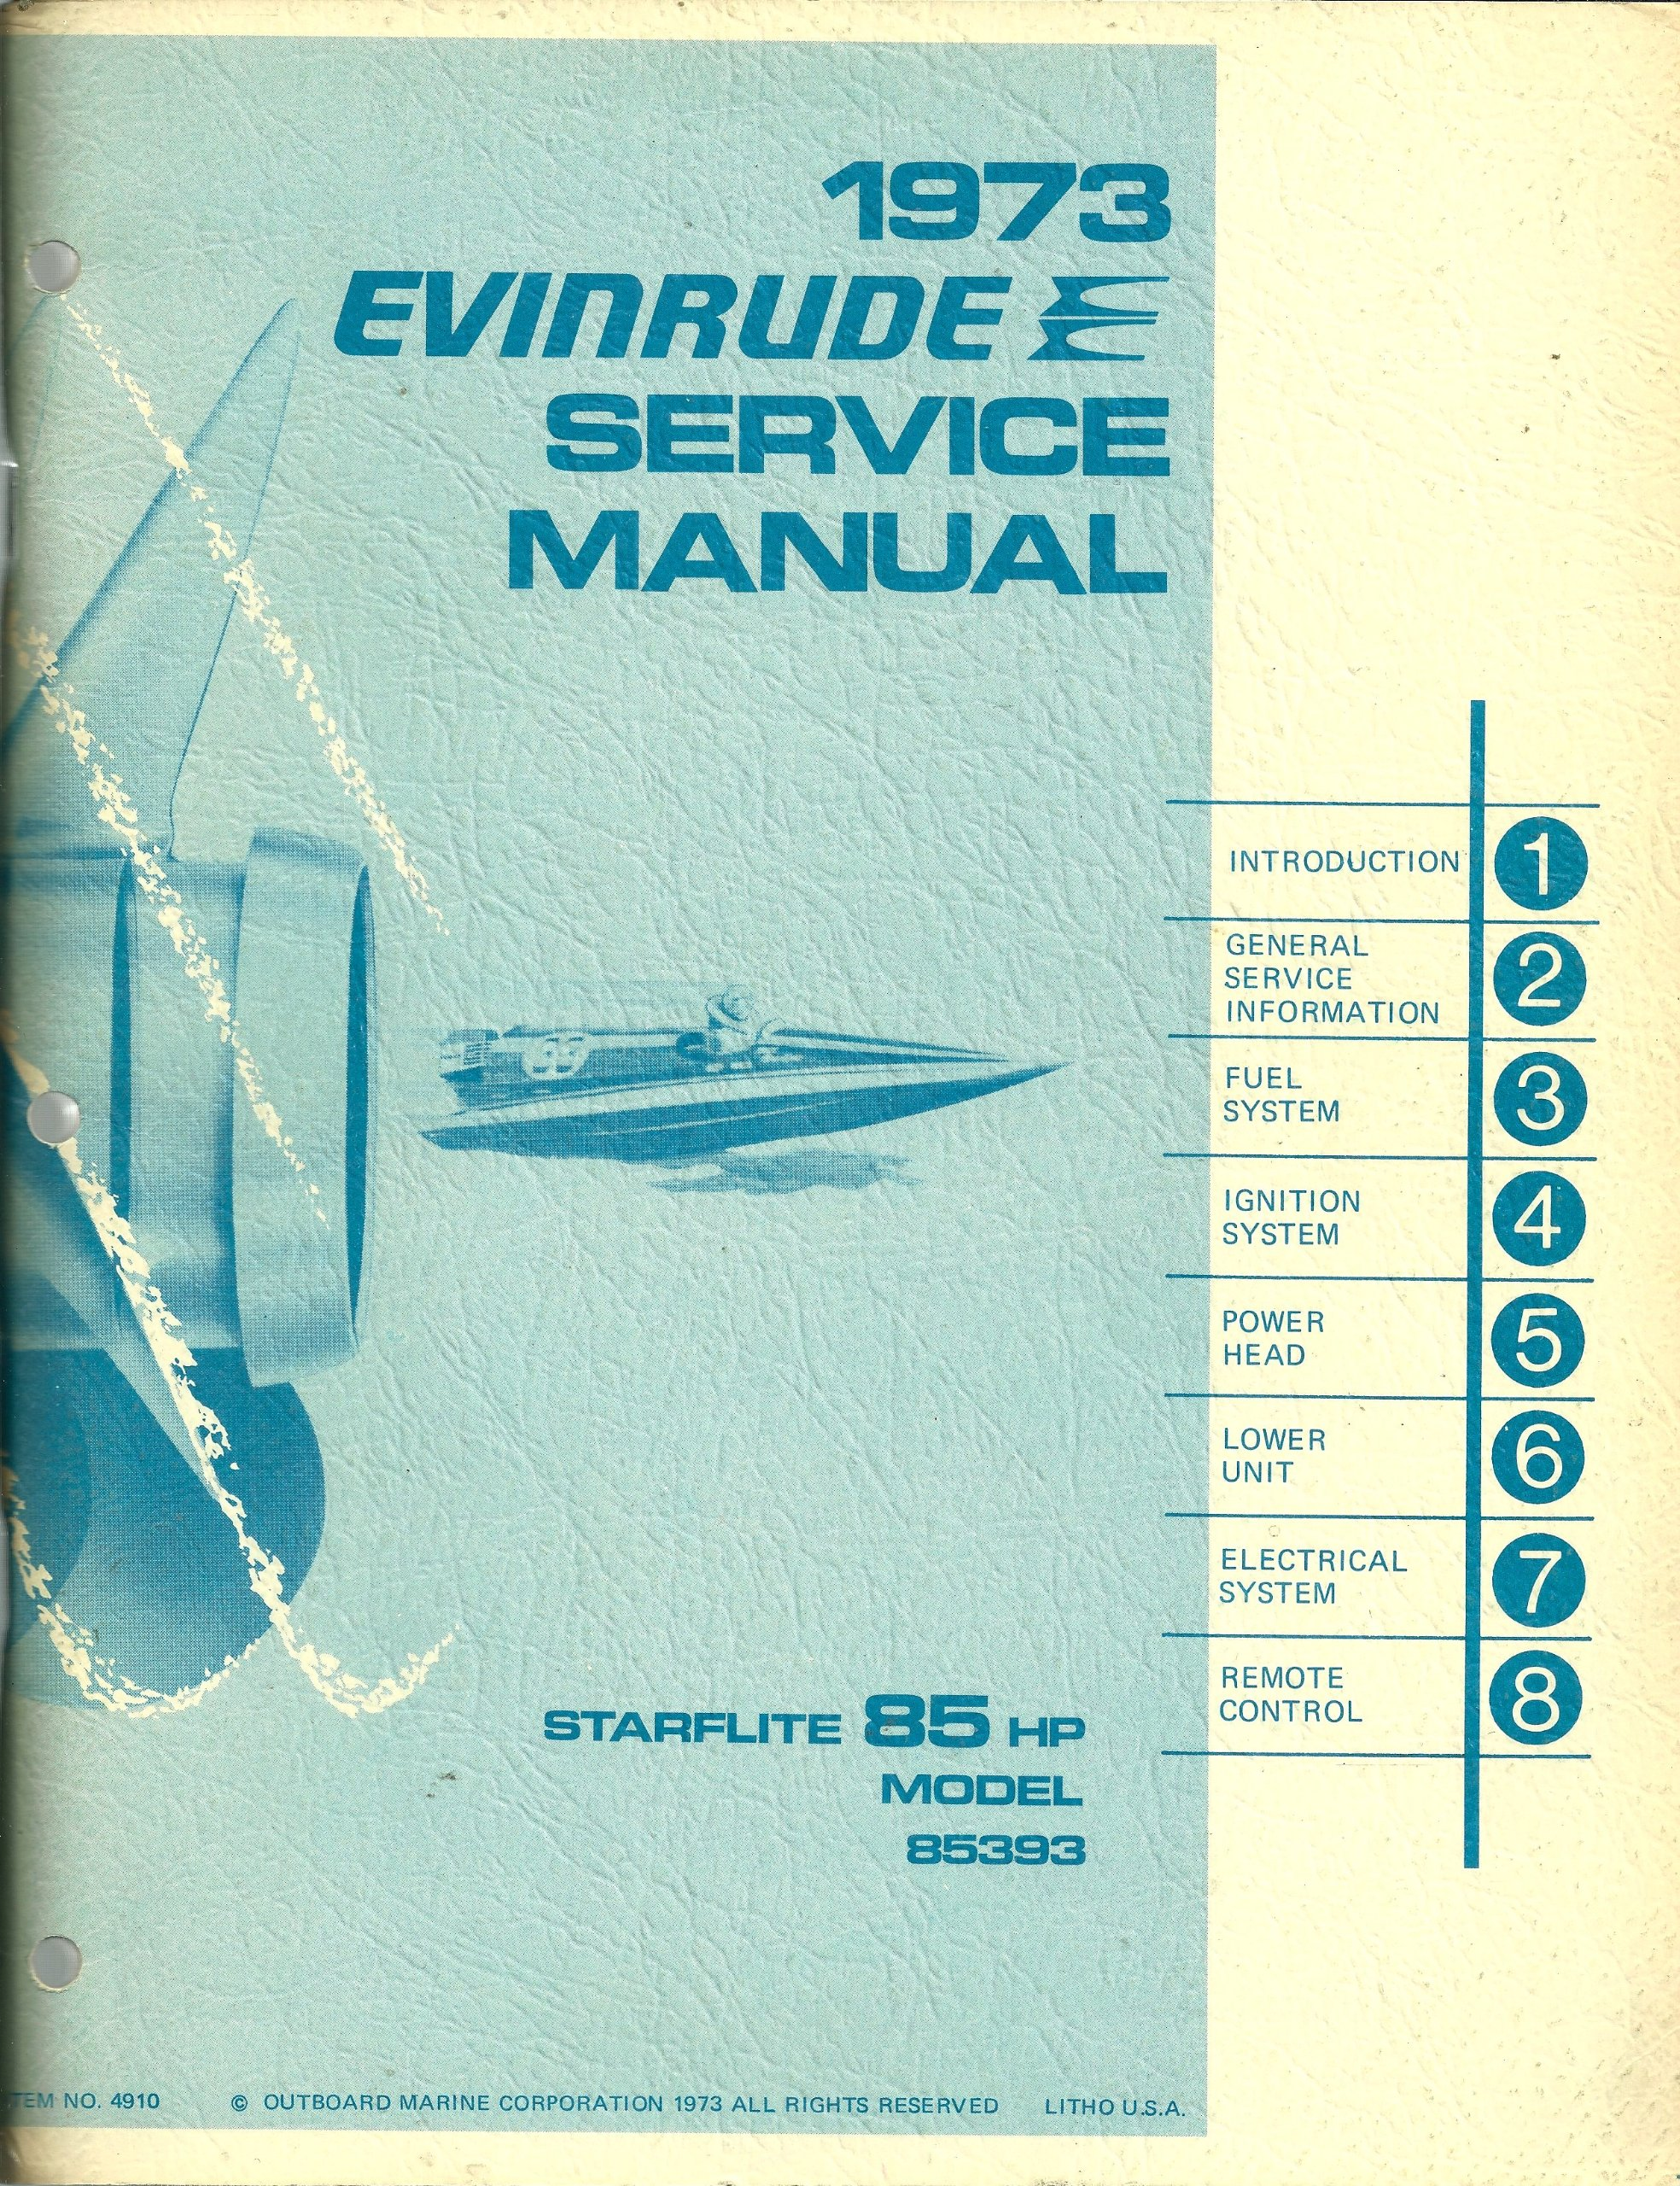 1973 evinrude 135 wiring diagram 1973 evinrude service manual starflite 85 hp model 85393  1973 evinrude service manual